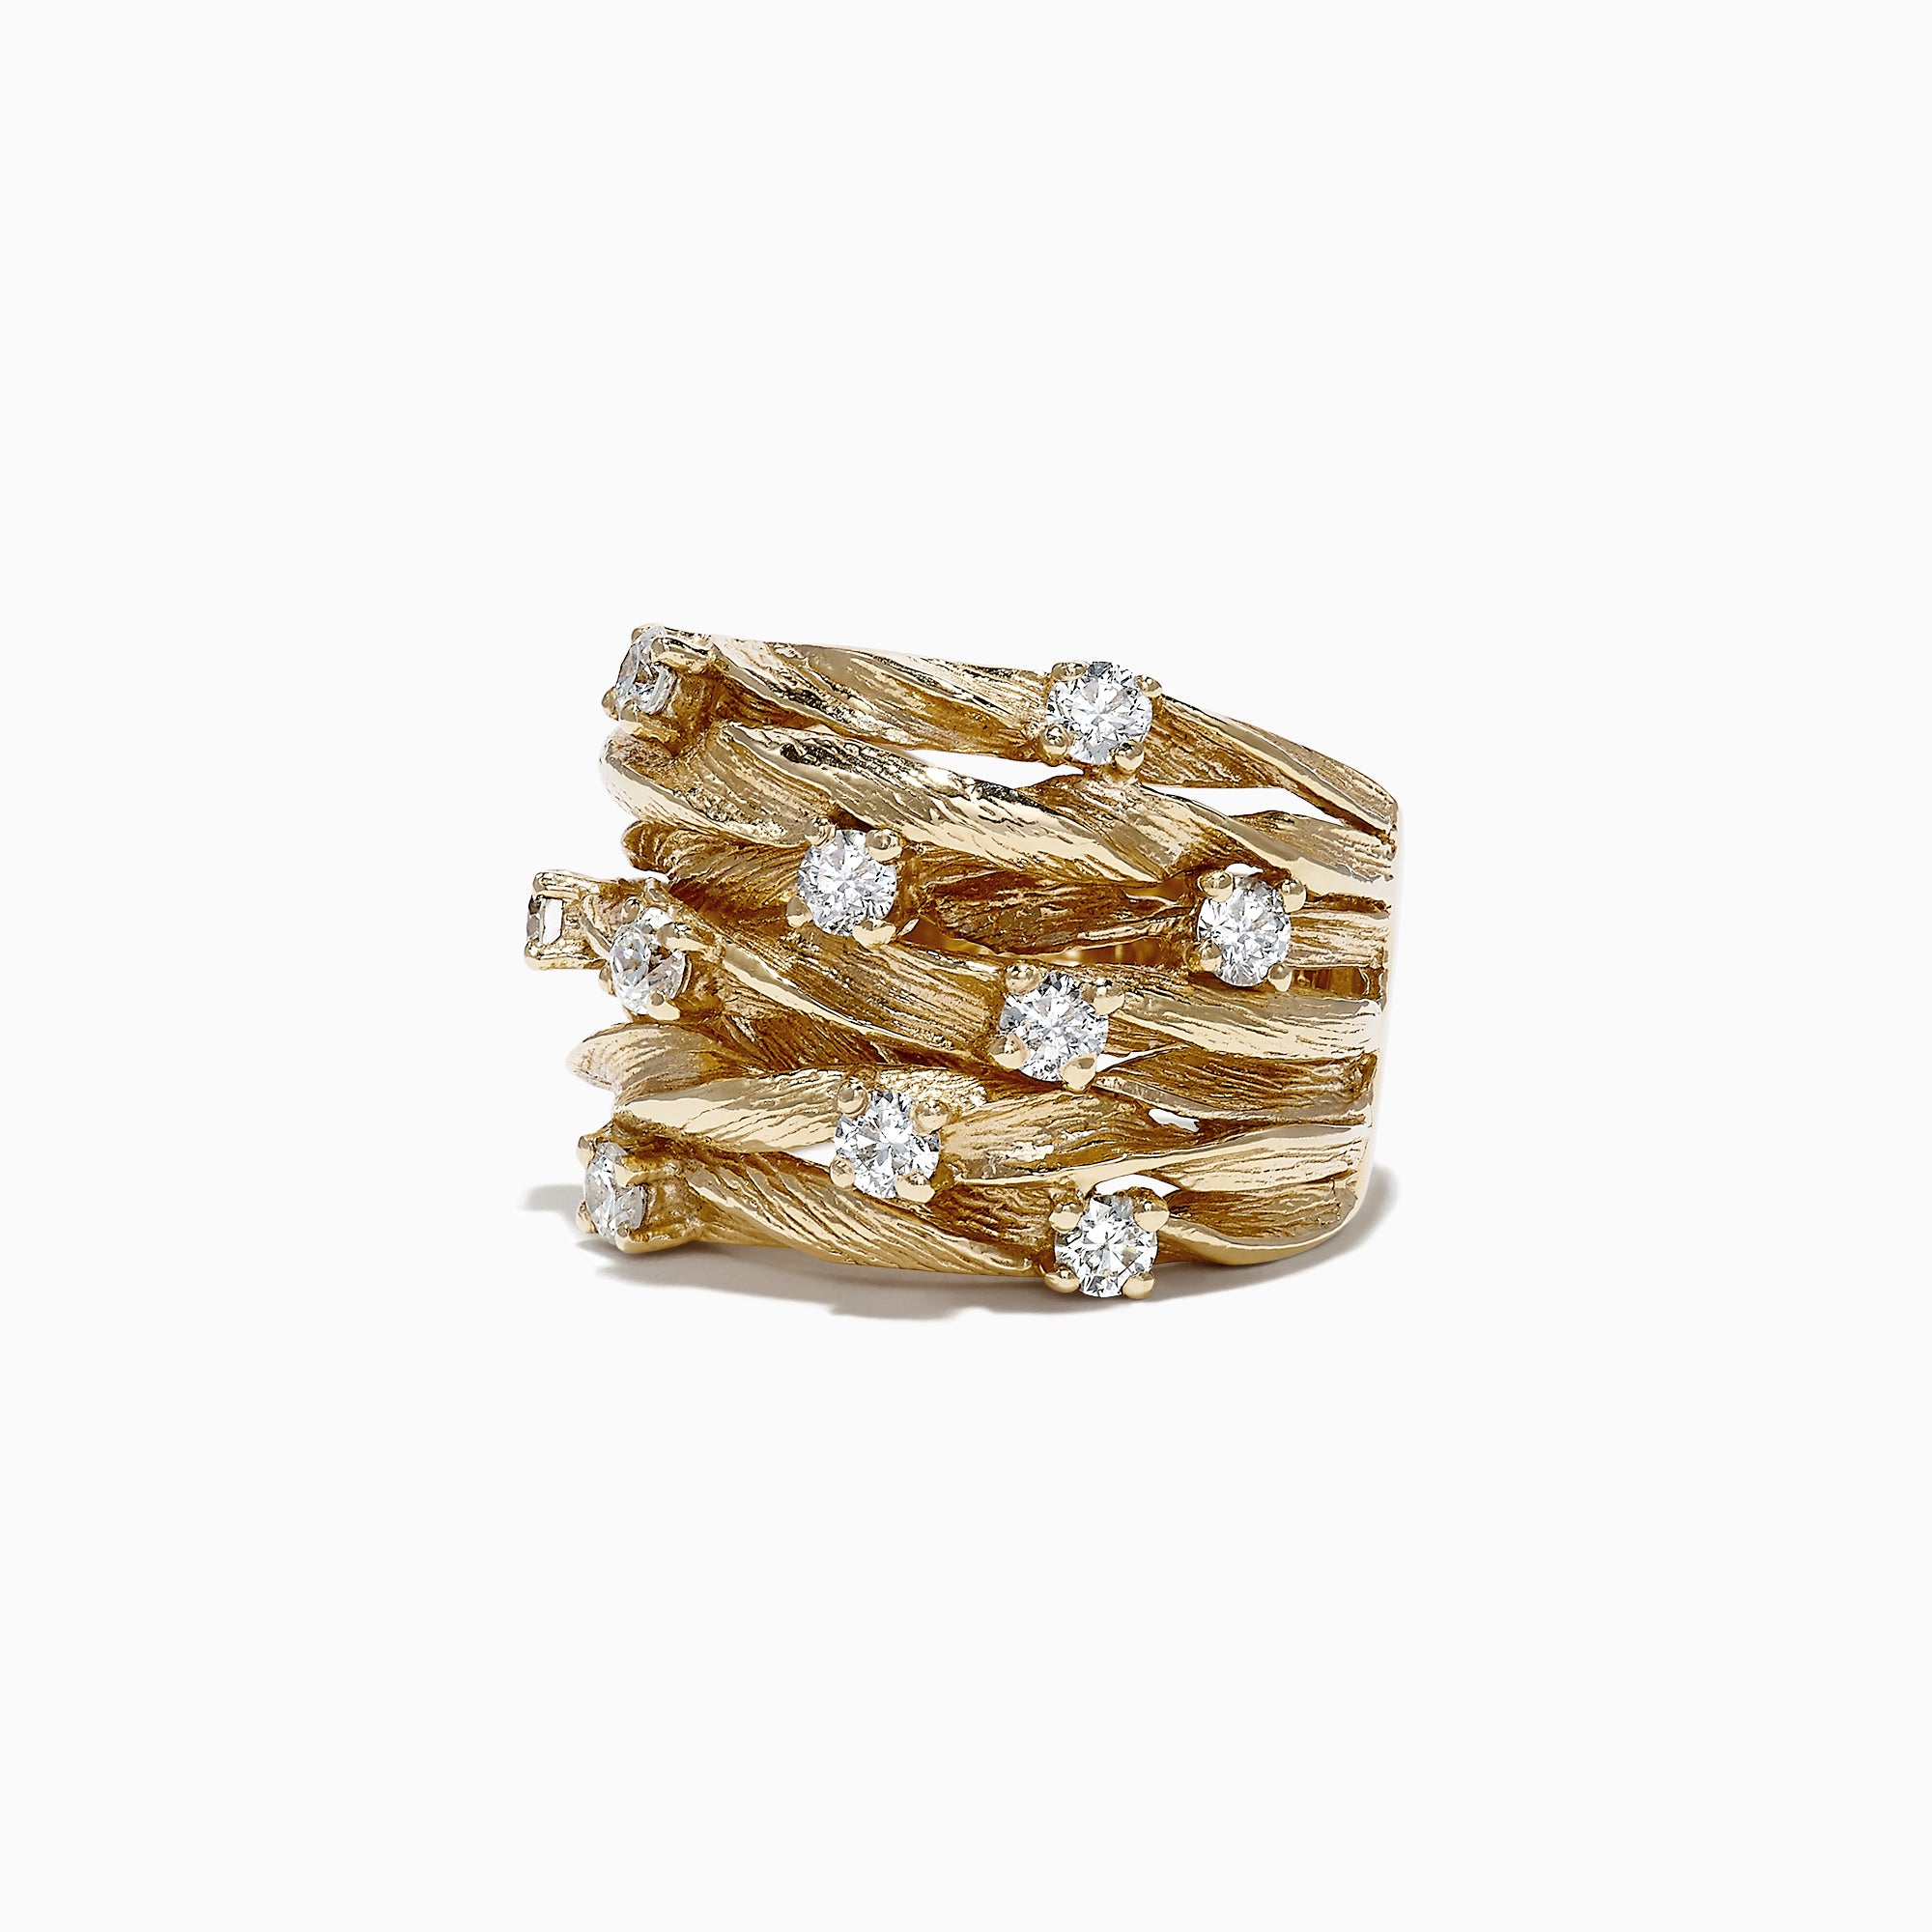 Effy D'Oro 14K Yellow Gold Diamond Ring, 0.98 TCW